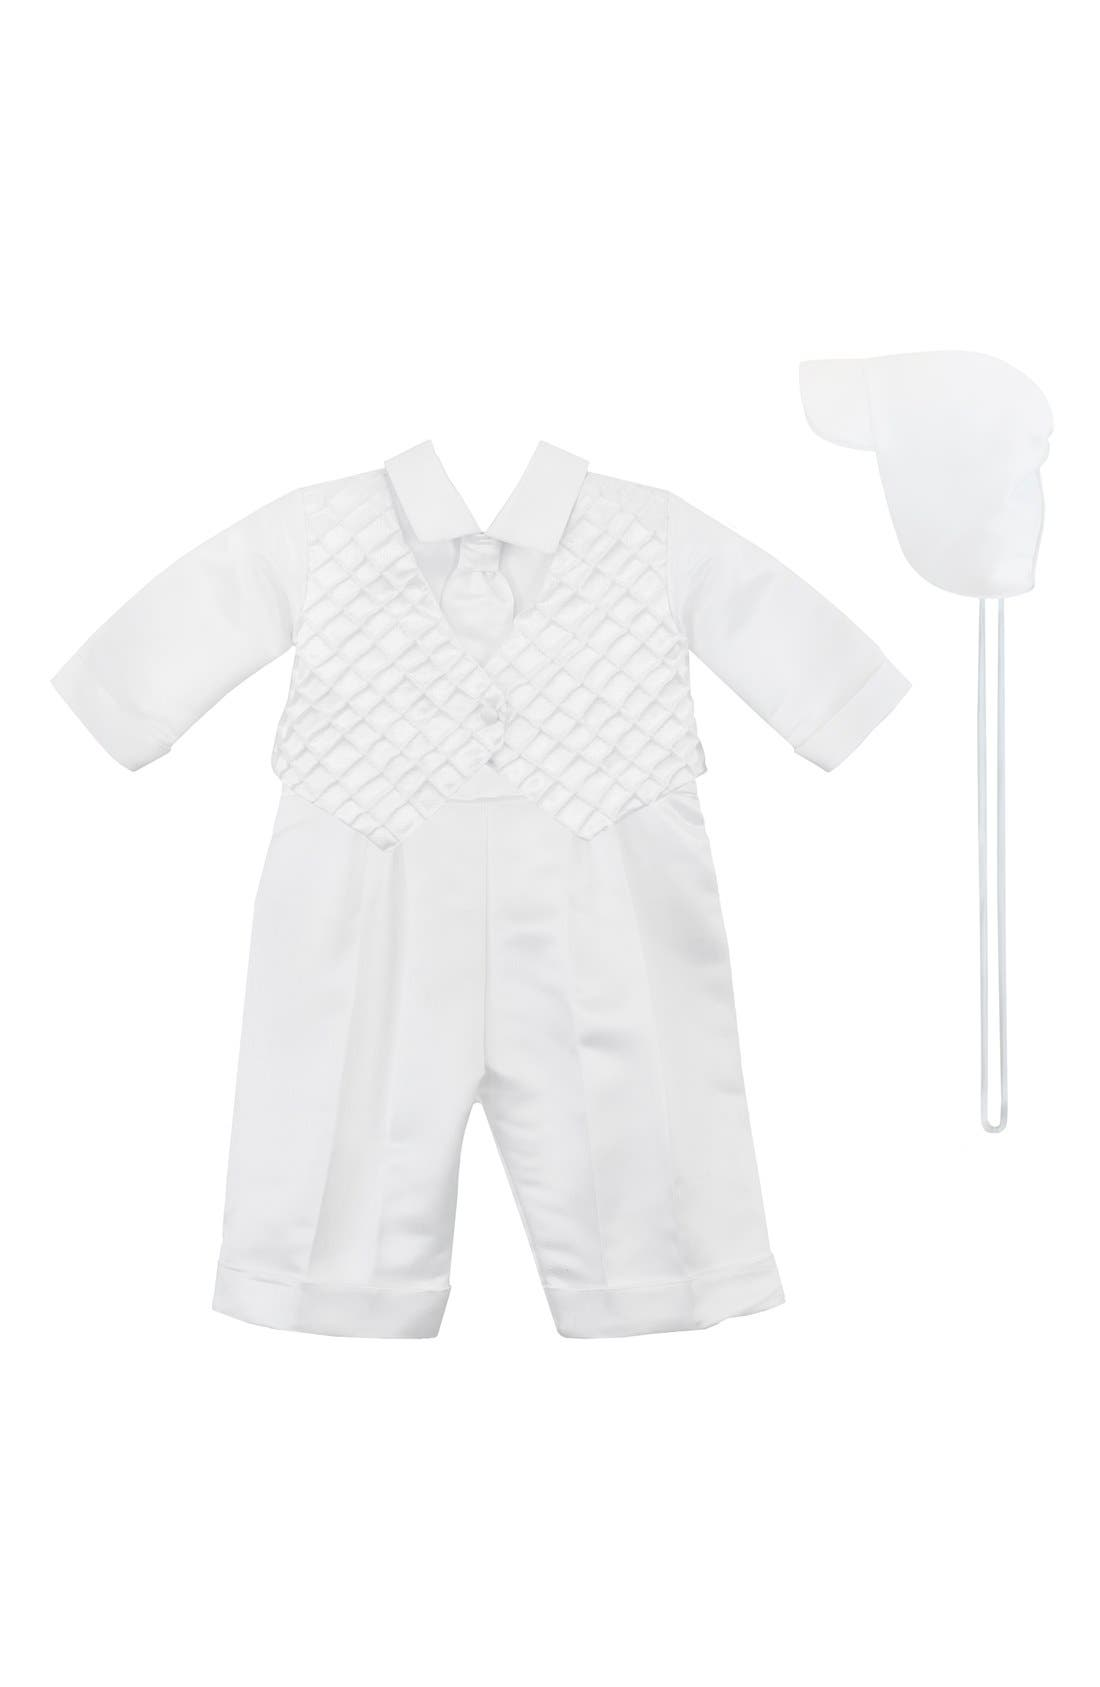 C.I. Castro & Co. Christening Shirt, Pants & Hat (Baby Boys)